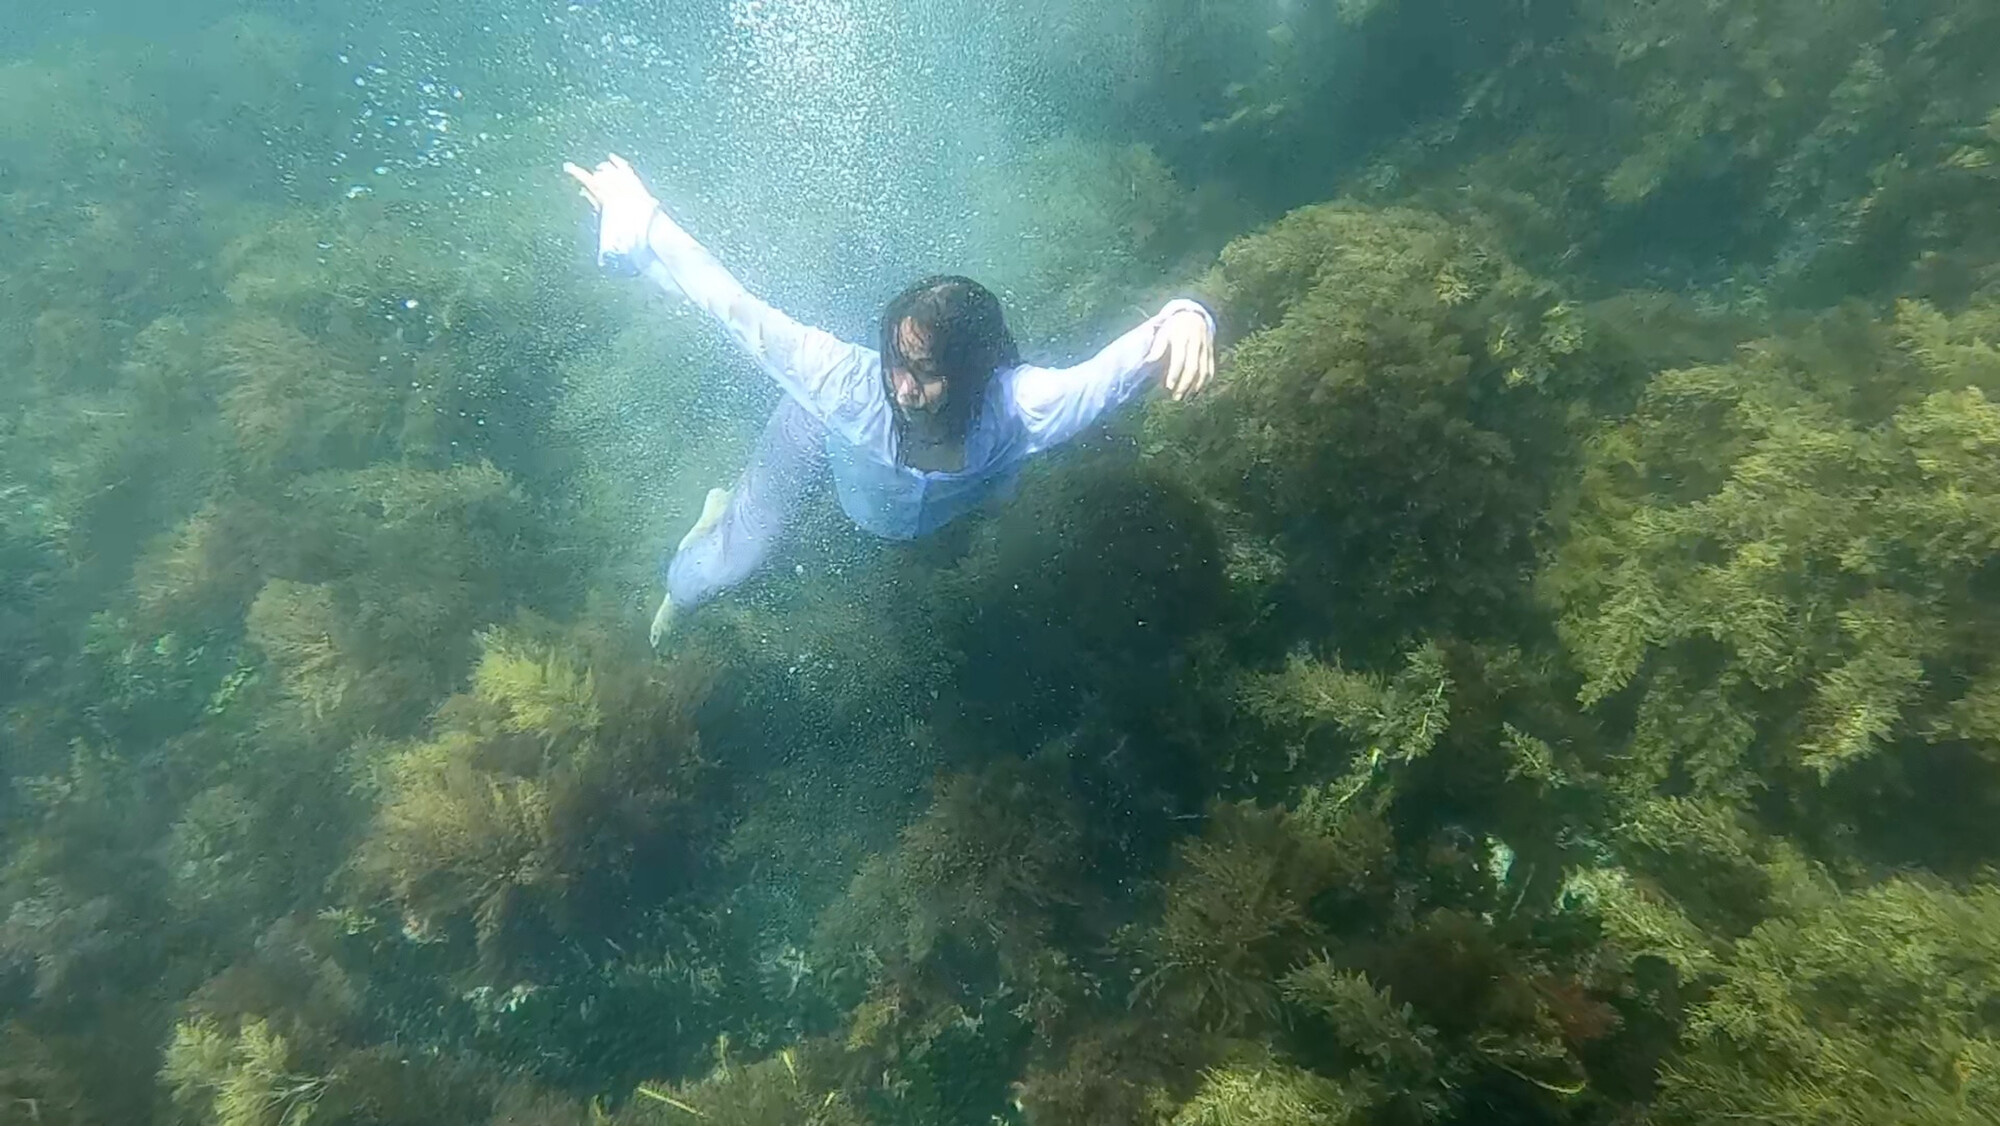 'Fathom', Dir. Dave Meagher. Photo by Dave Meagher.